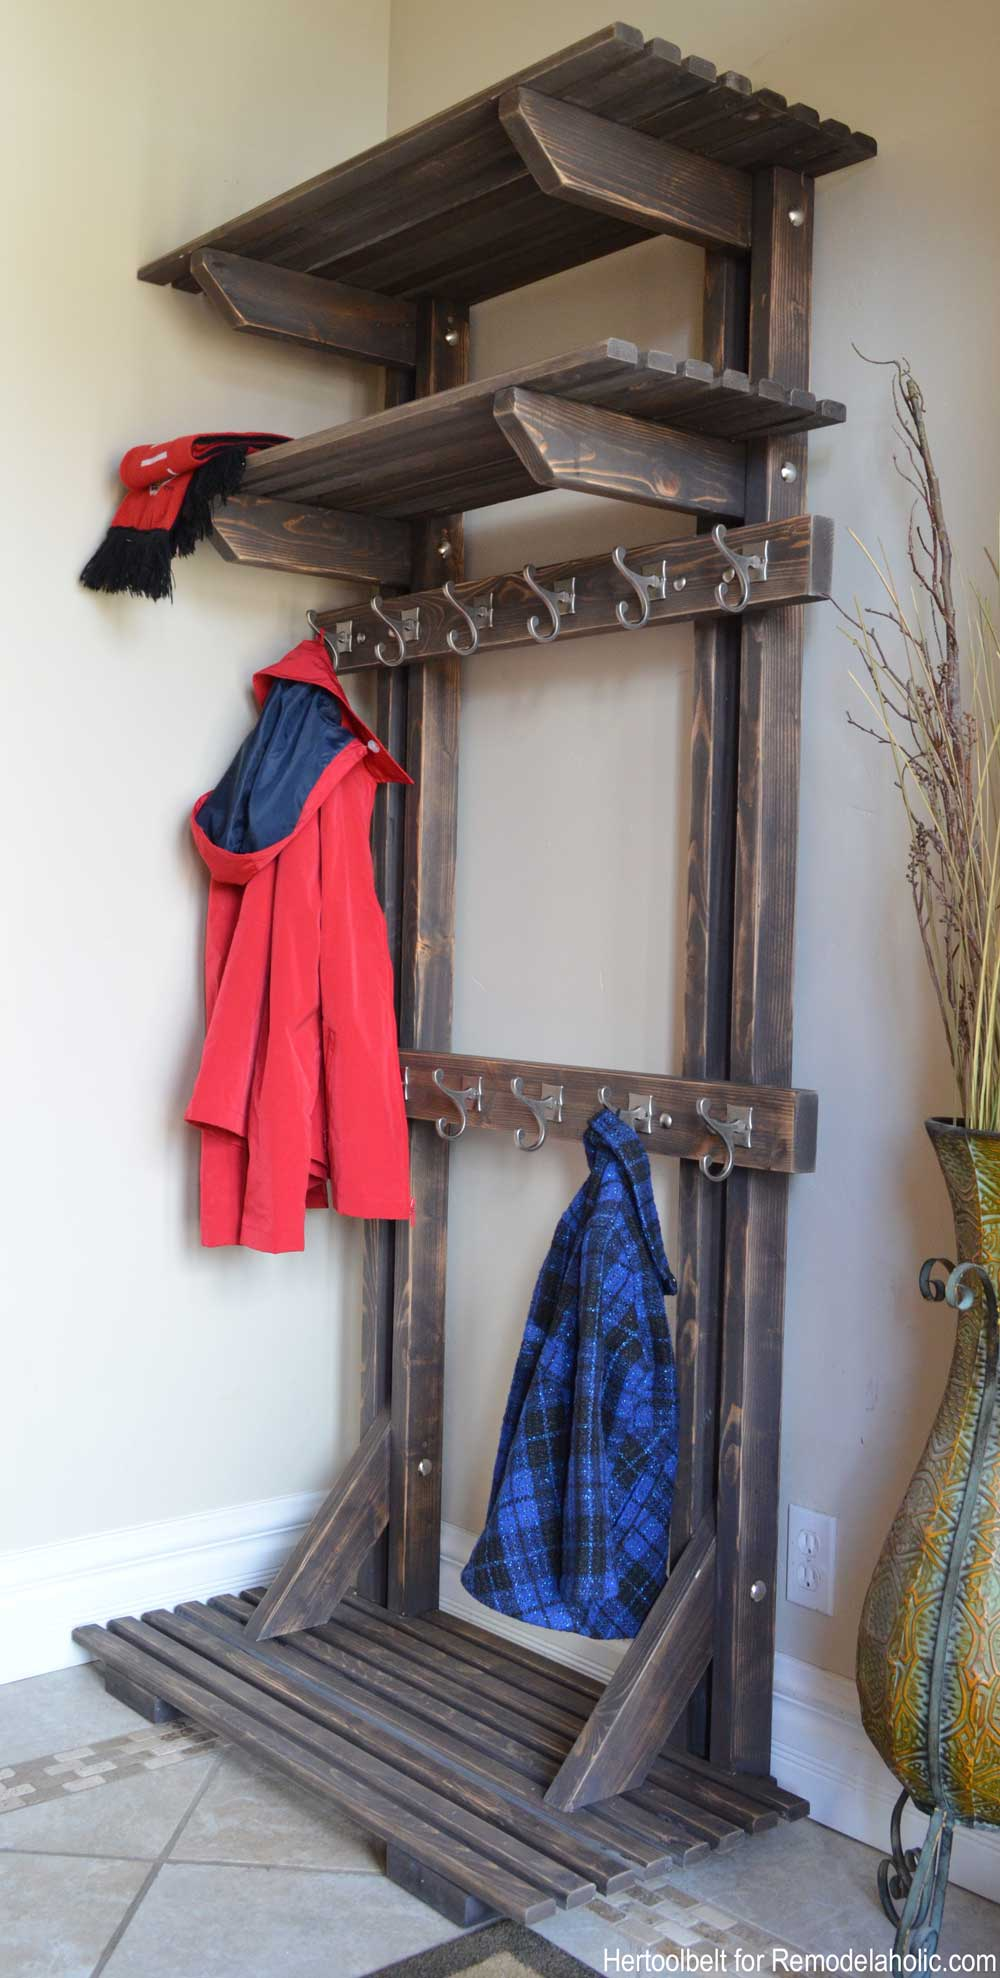 Remodelaholic DIY Hall Tree Coat Rack inspired by